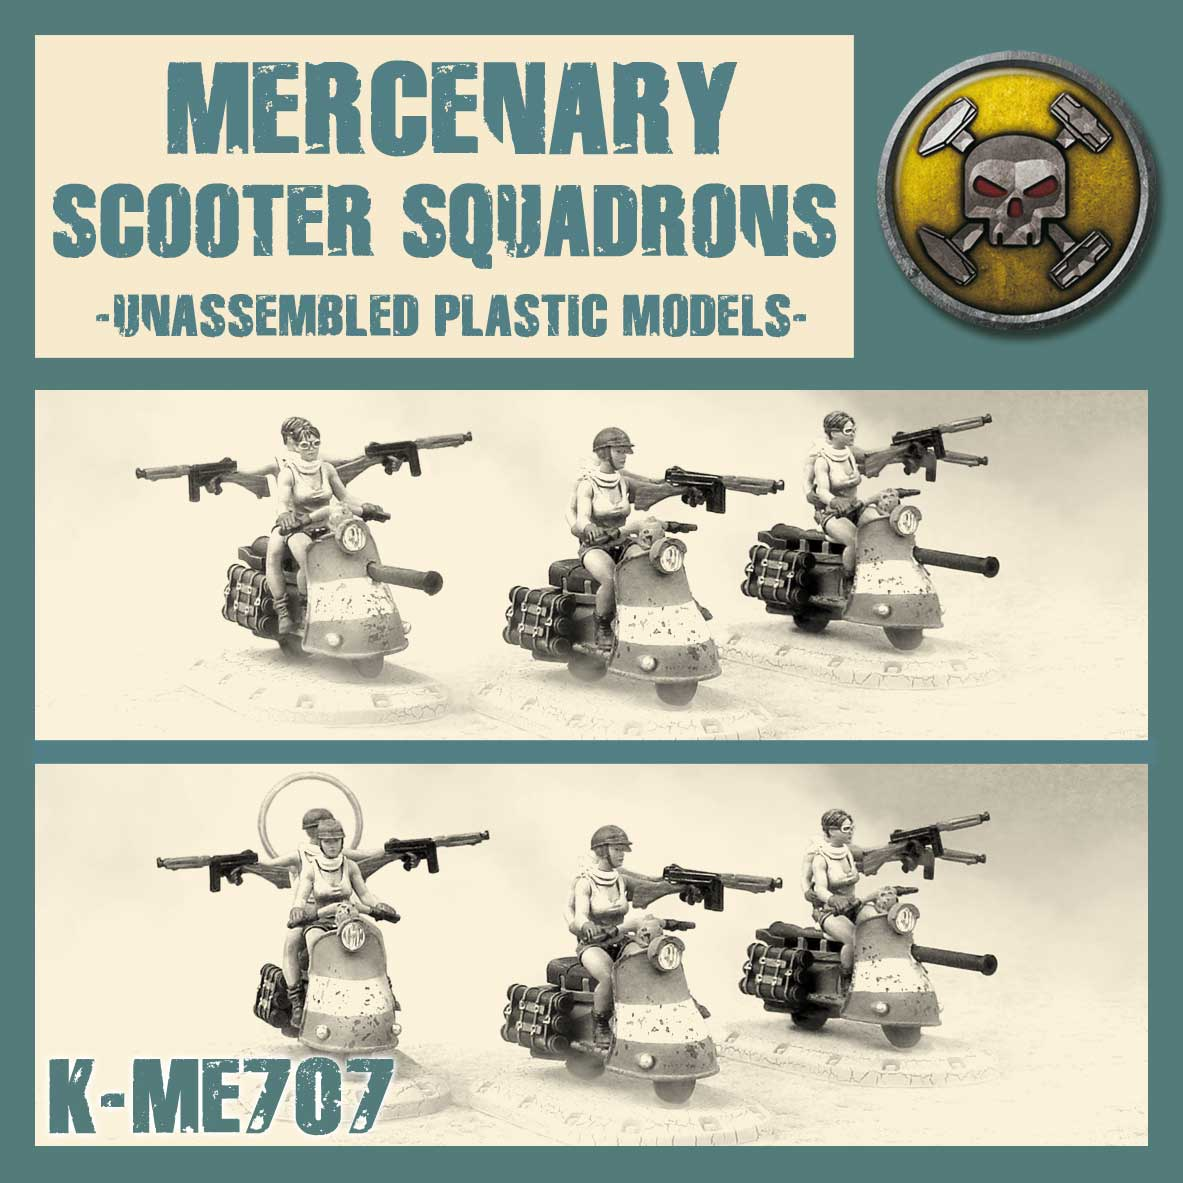 Mercenary Scooter Squadron Kit